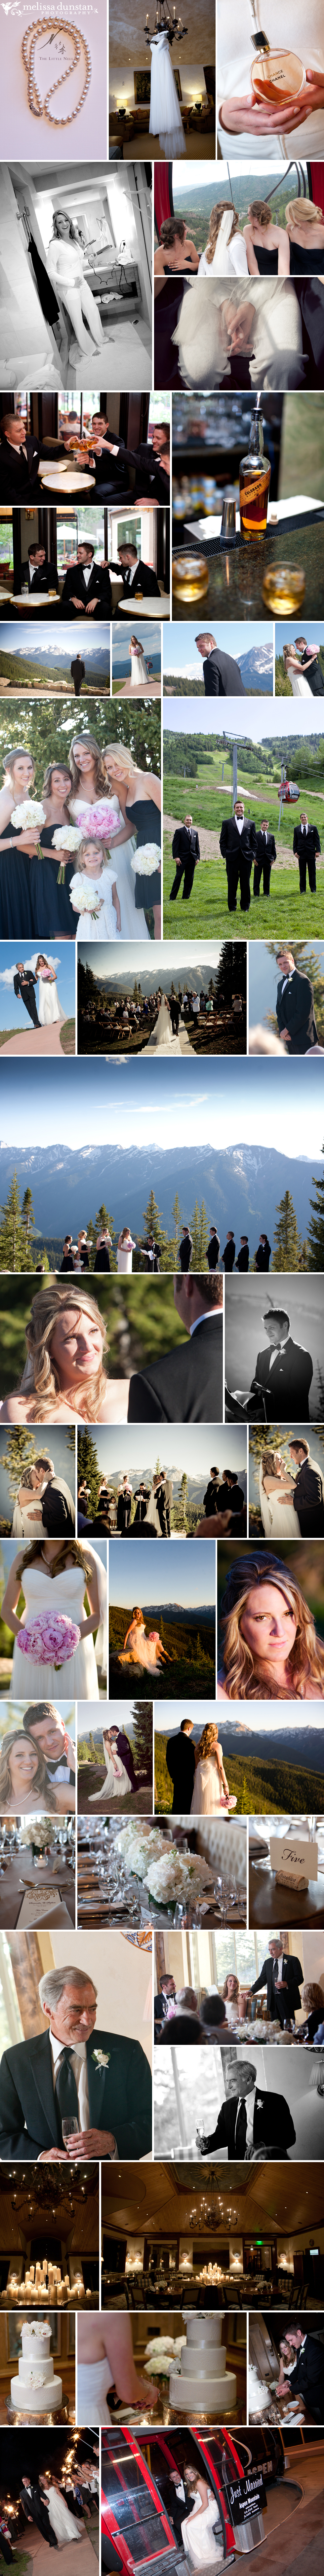 The Little Nell, Aspen Wedding Photography, Mountain Weddings, Outdoor